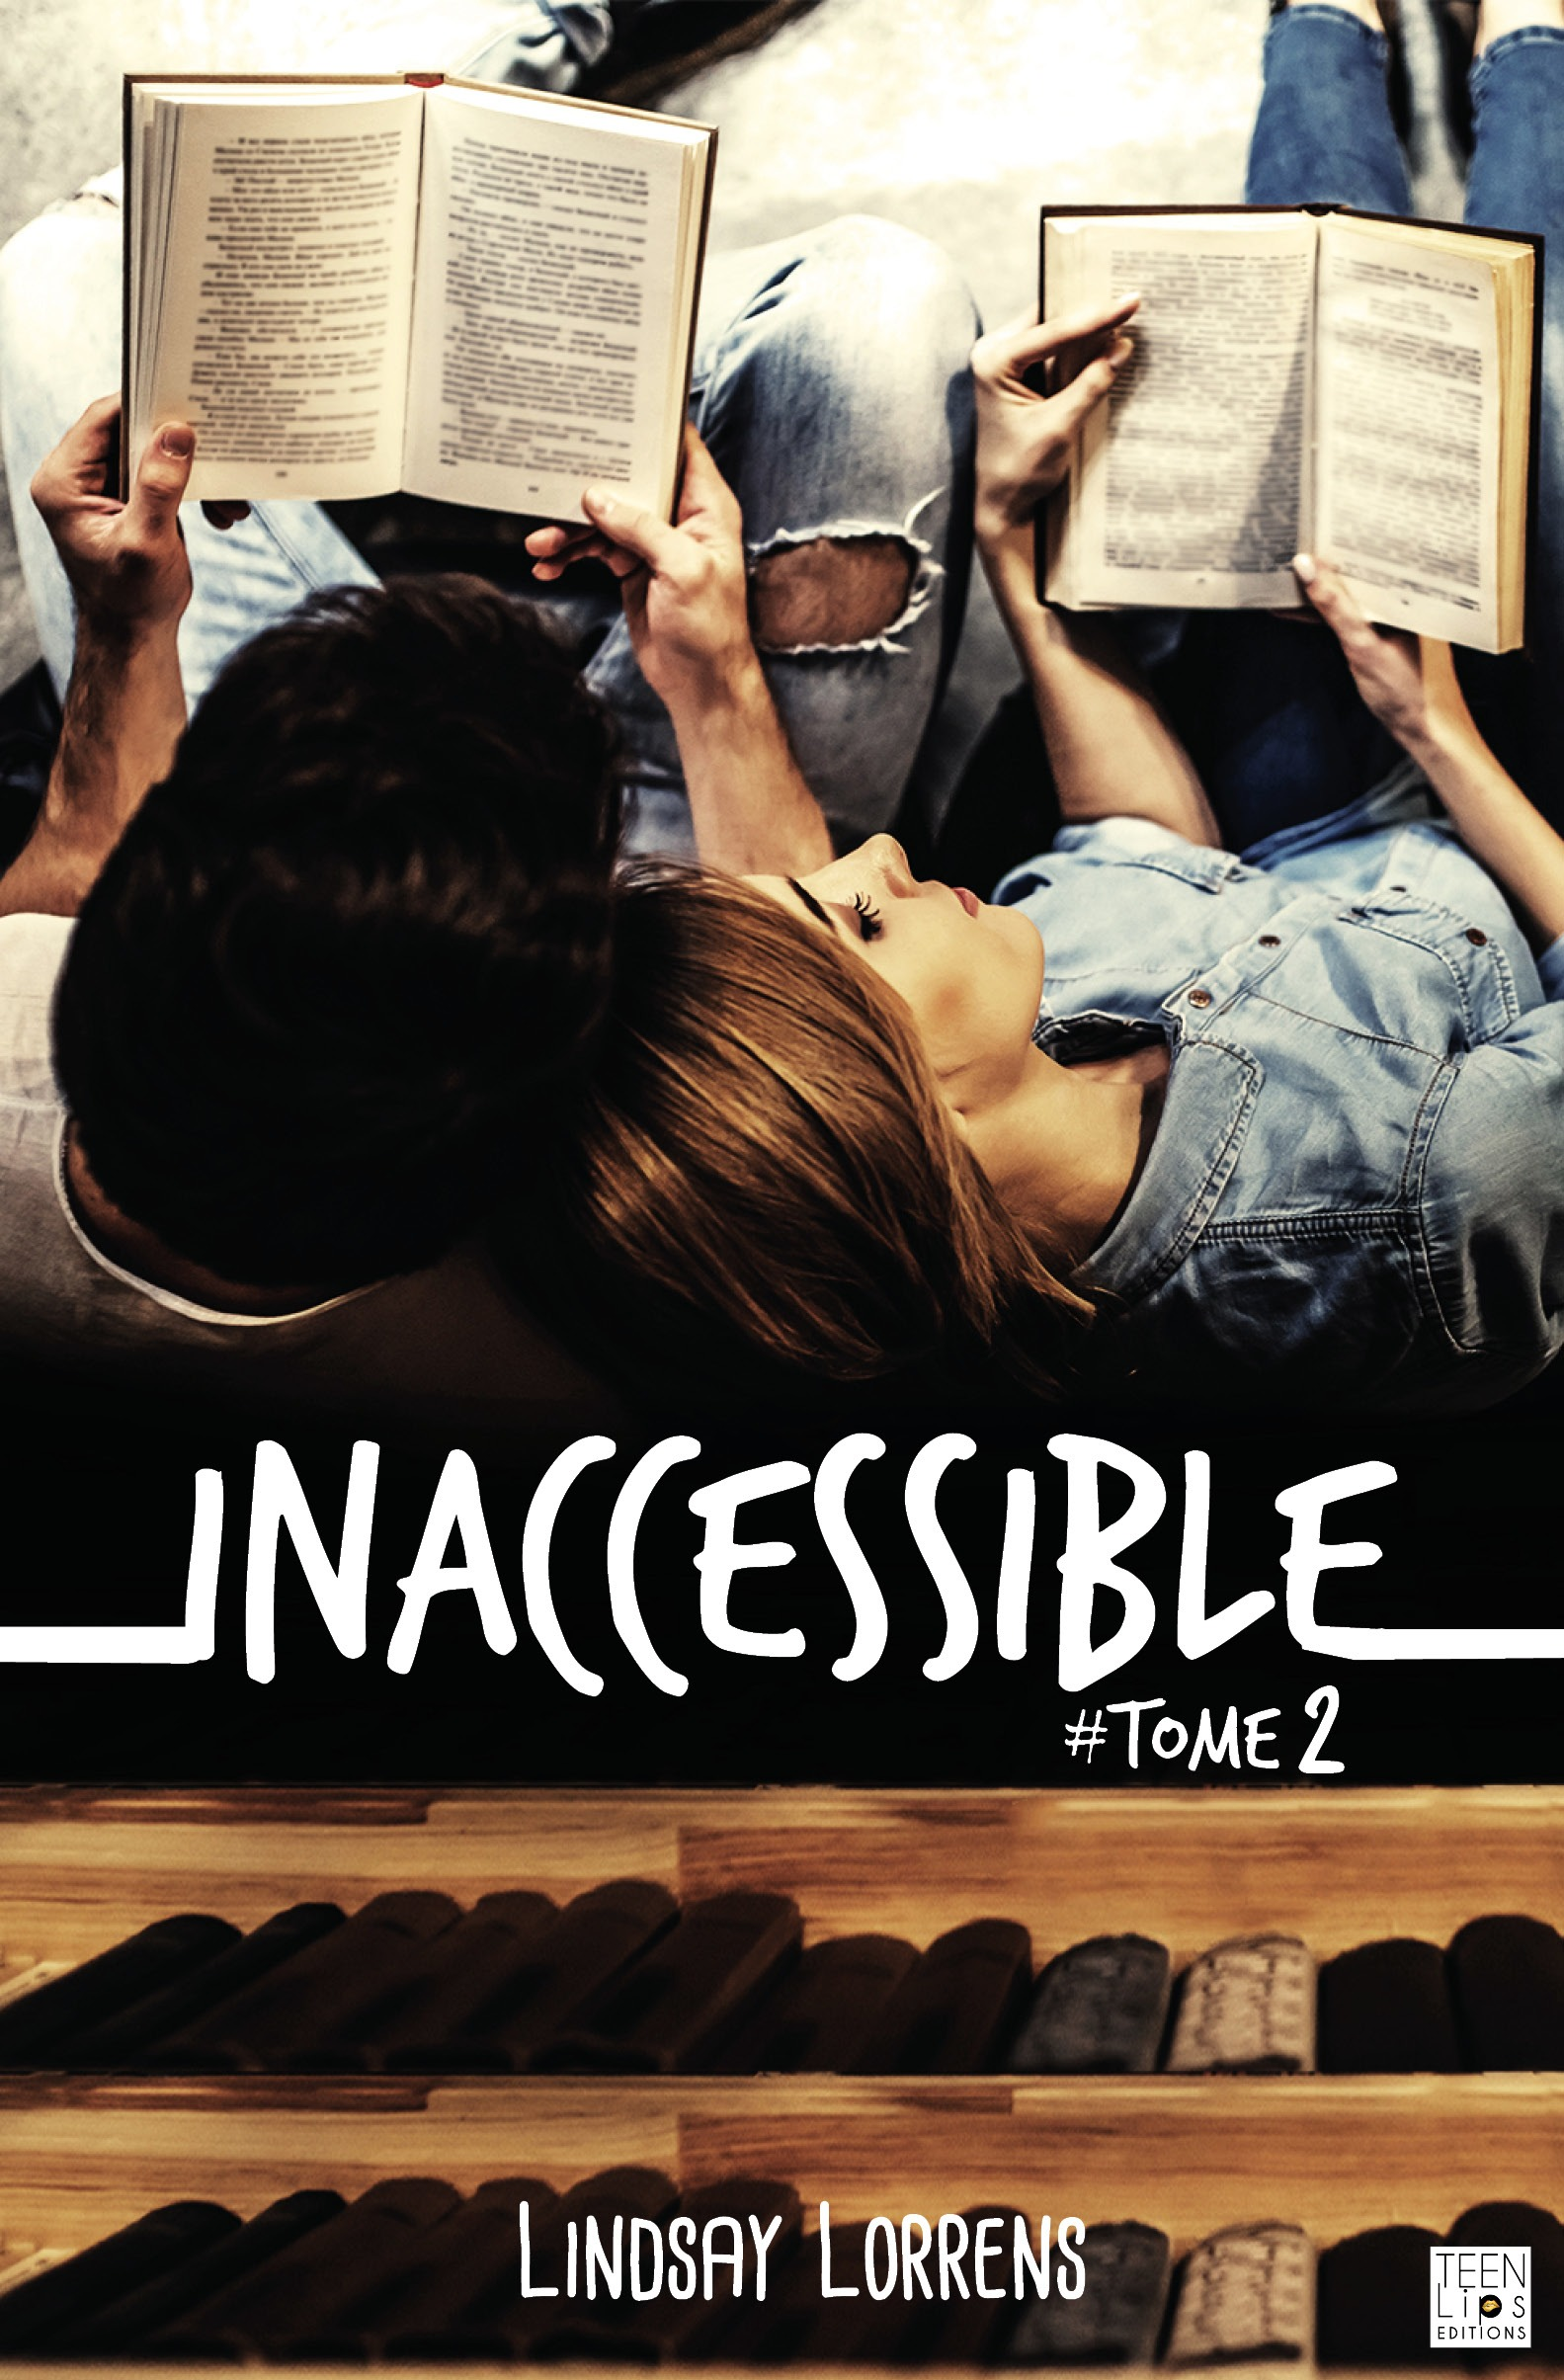 Inaccessible - Tome 2